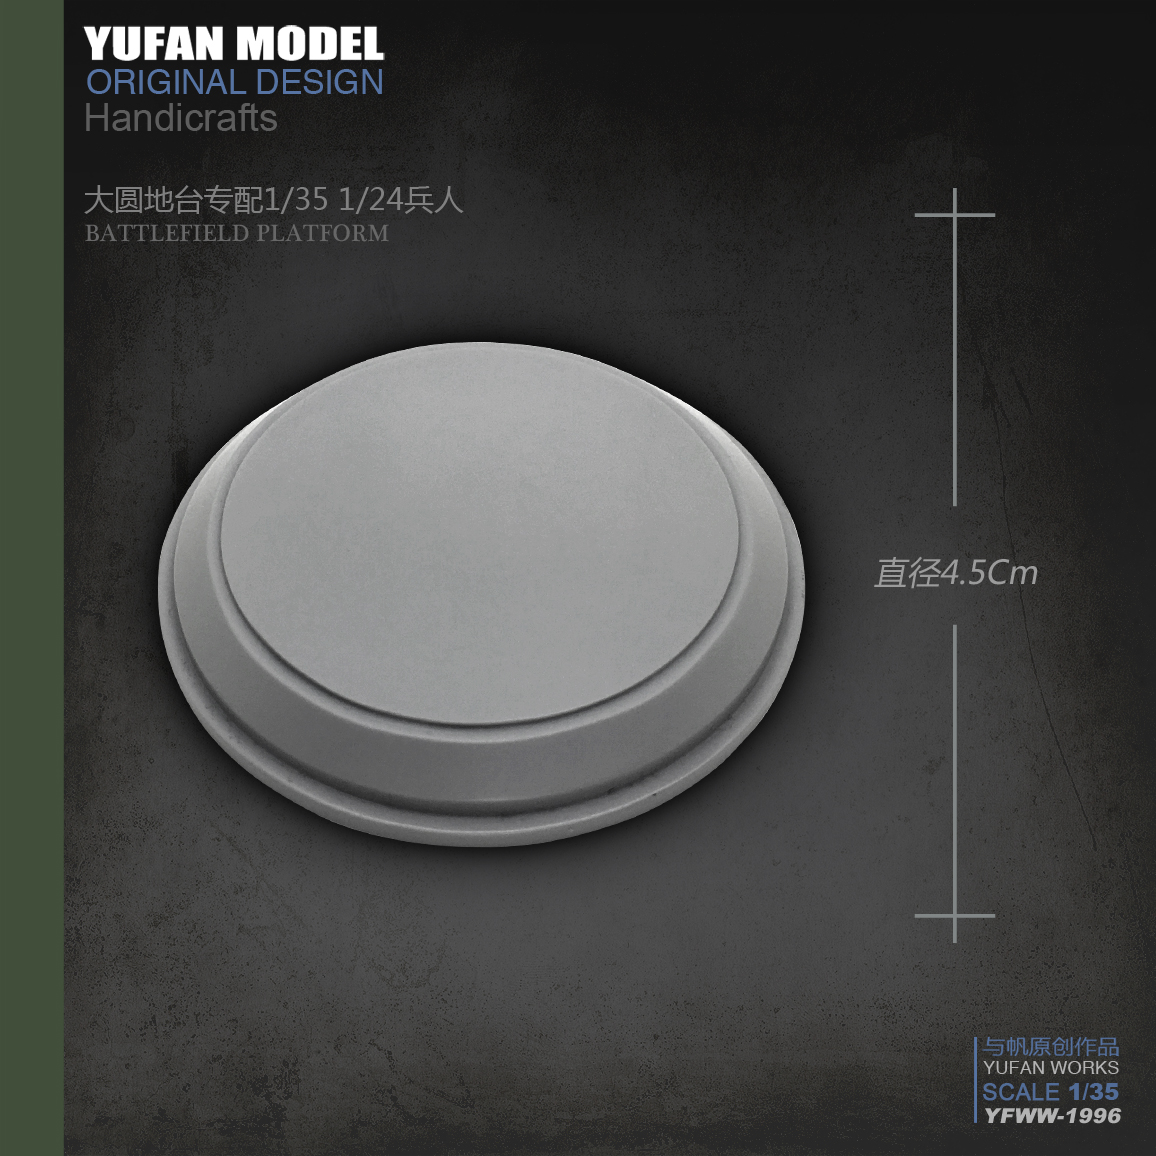 Yufan Model  Resin Platform Of 4.5cm Resin Soldier Accessories  YFWW-1997